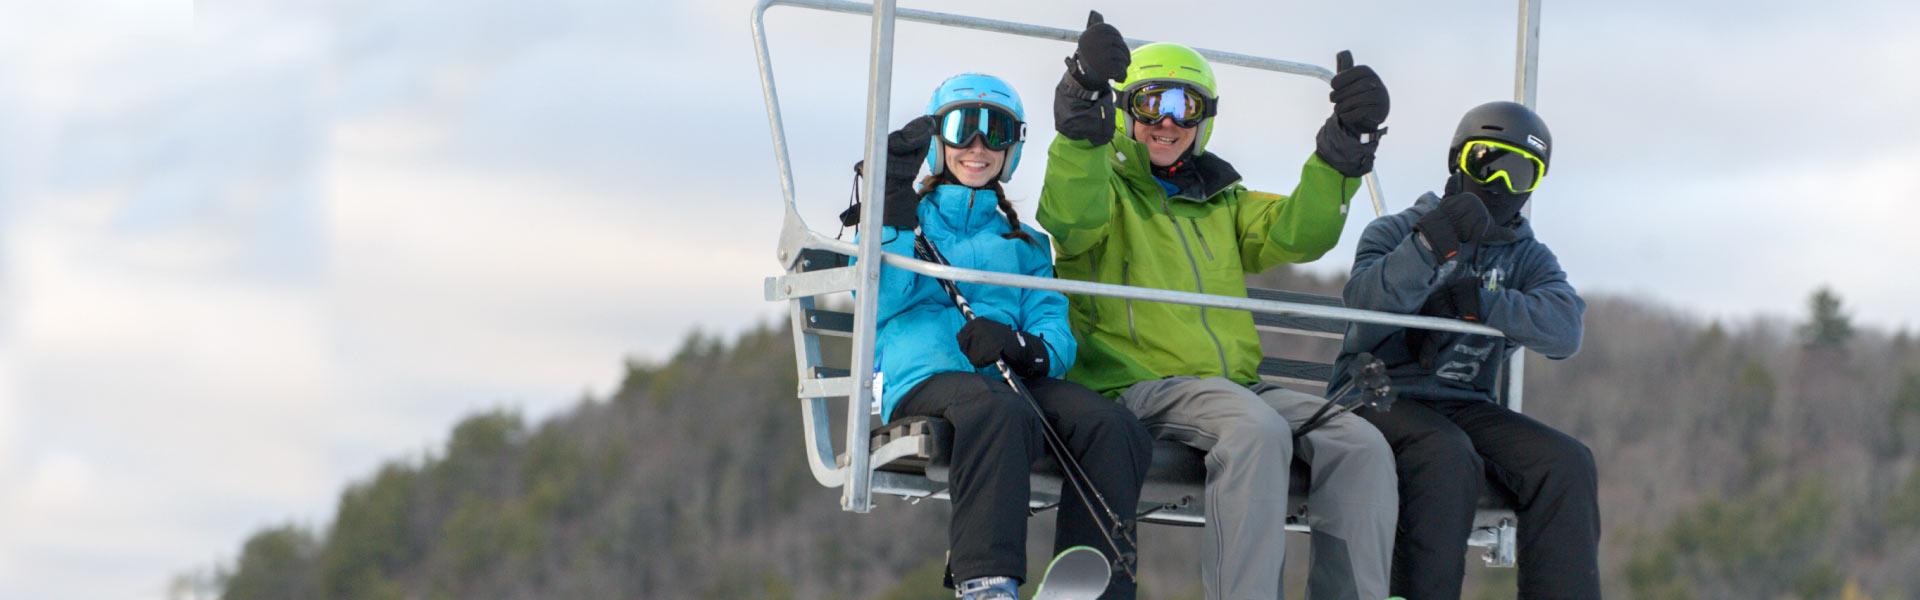 Three adults on triple chair lift